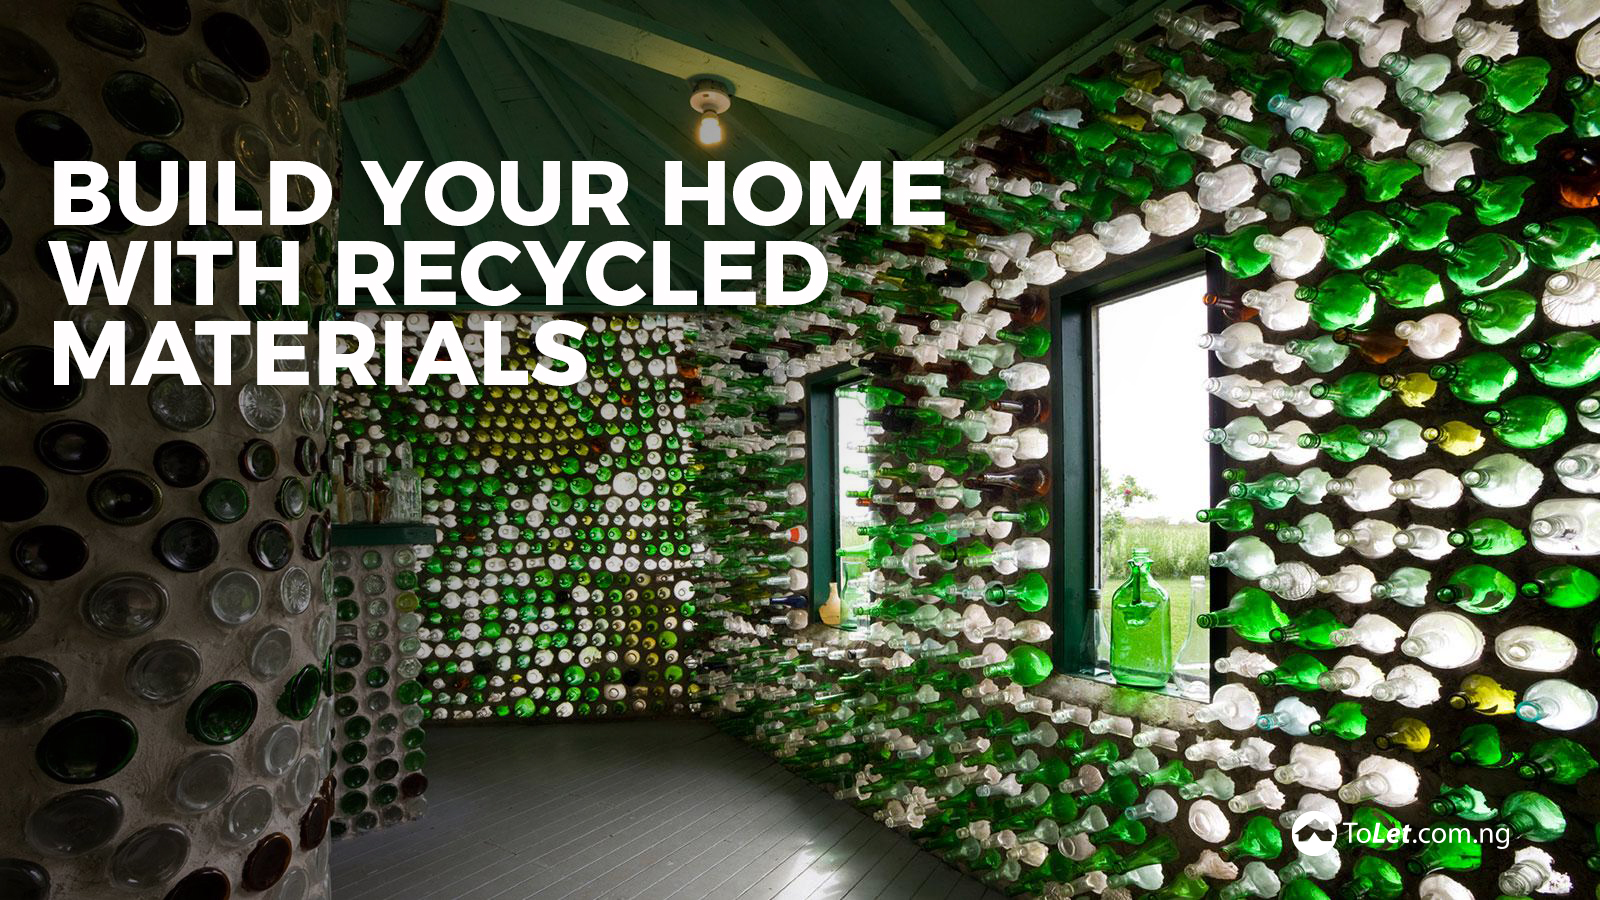 Save cost build your home with recycled materials